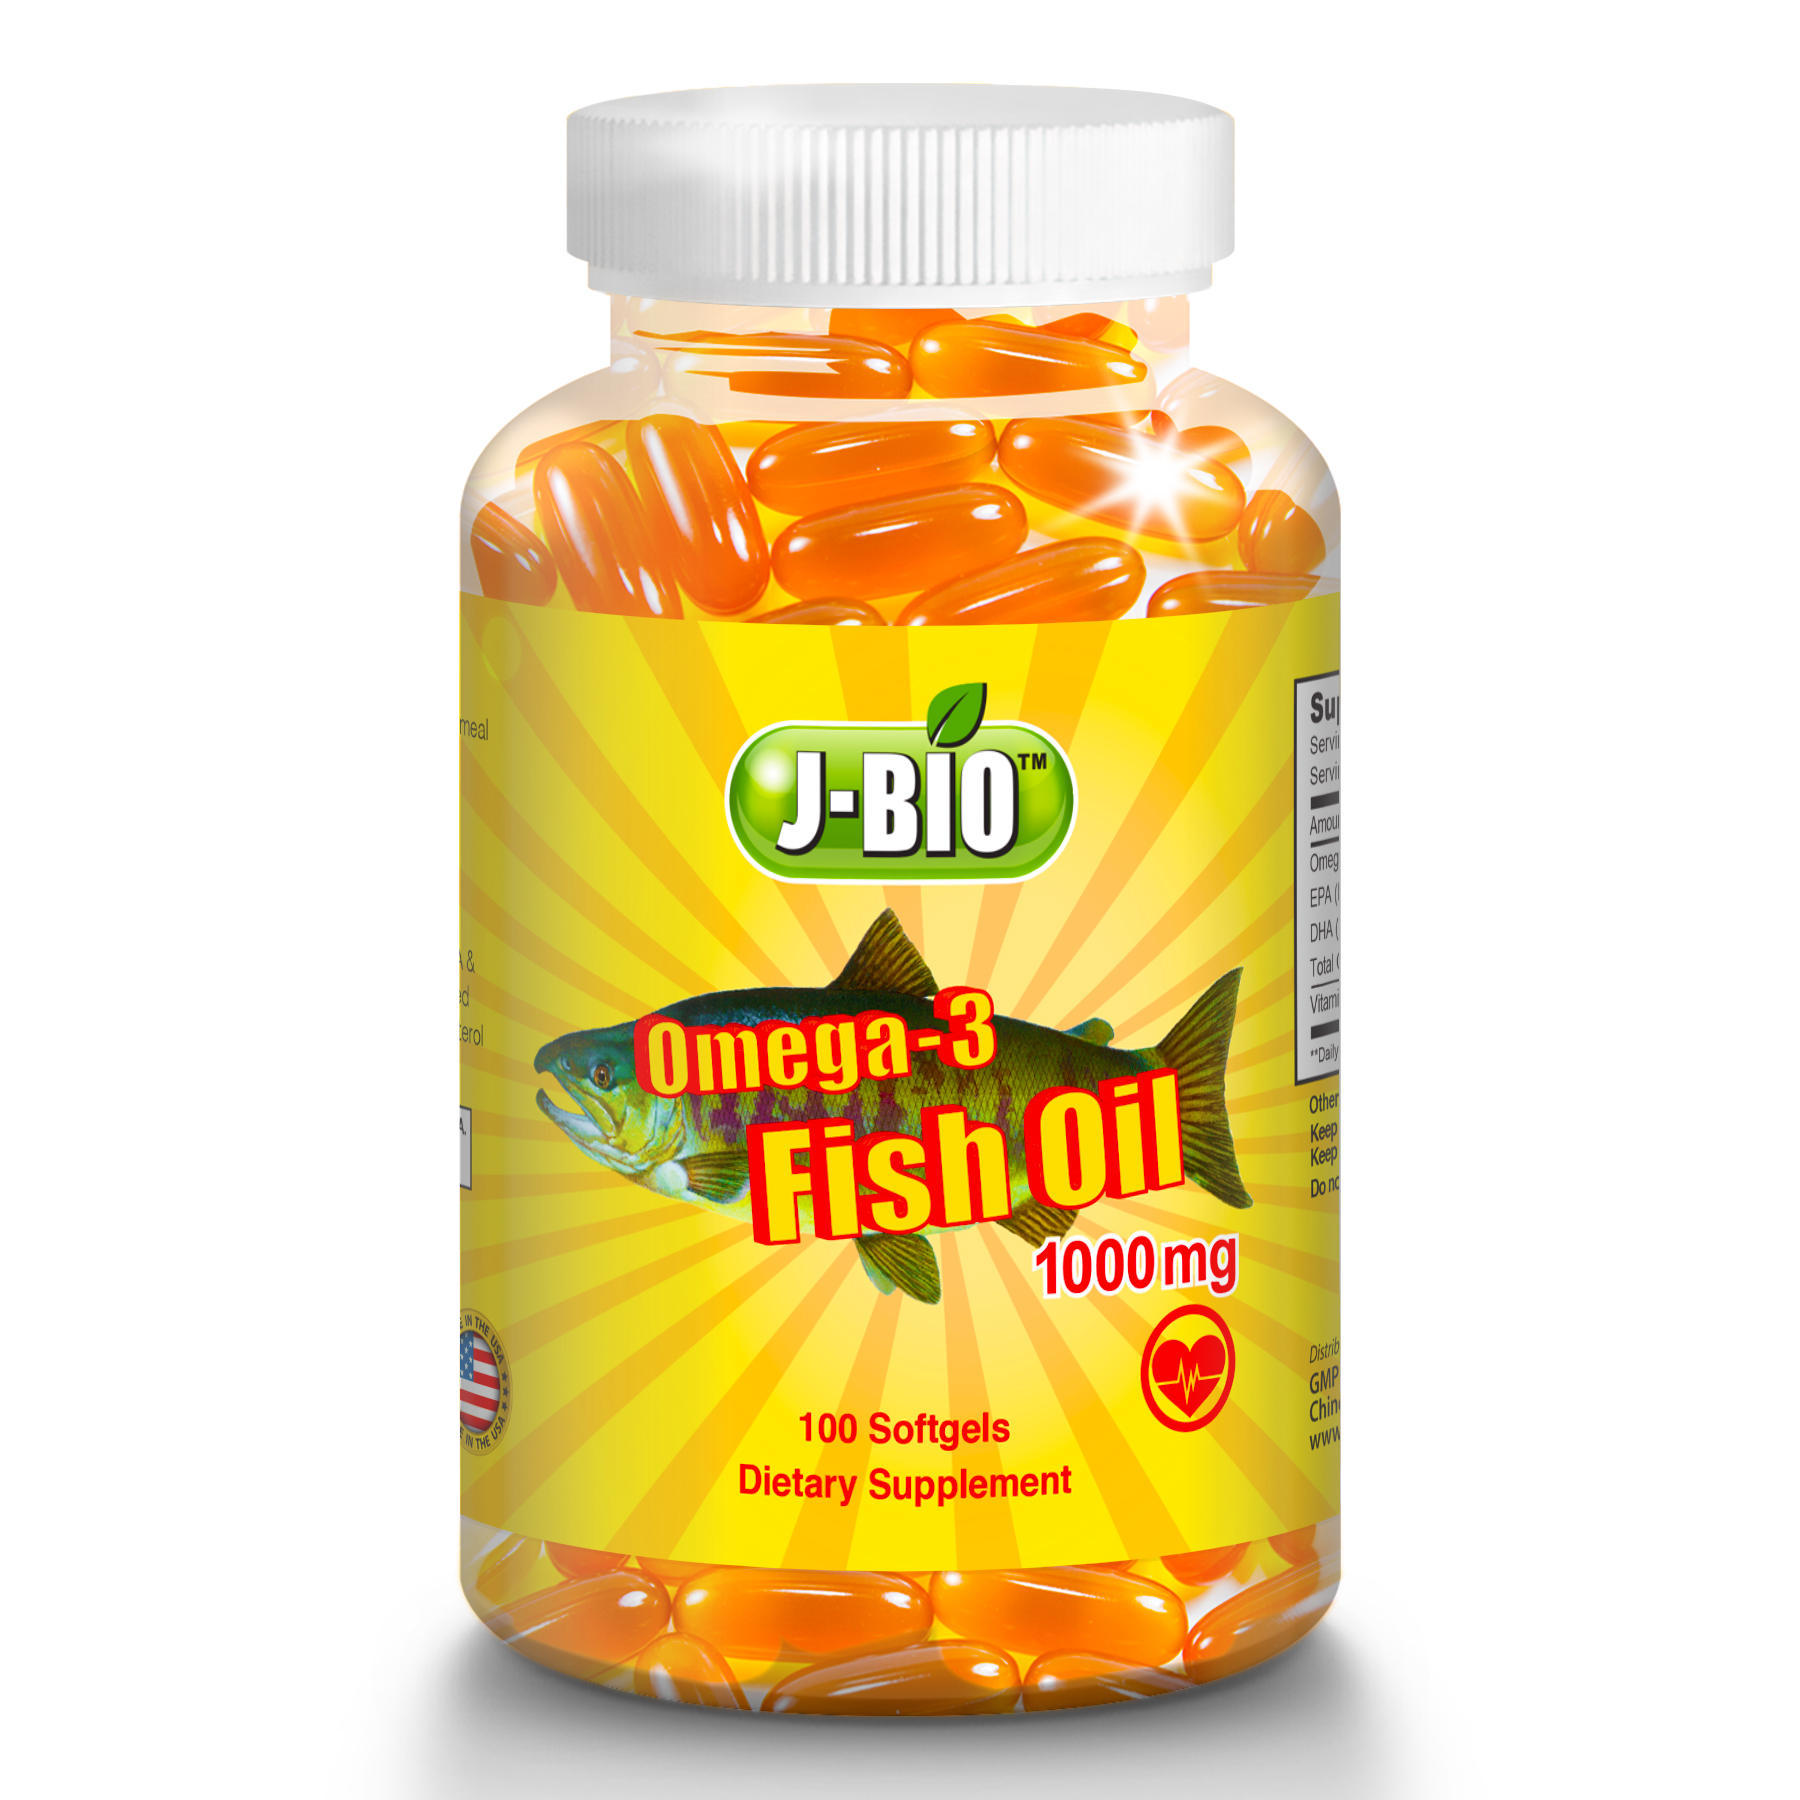 Alaska Deep Sea fish oil Omega-3 1000mg DHA/EPA 100 softgel